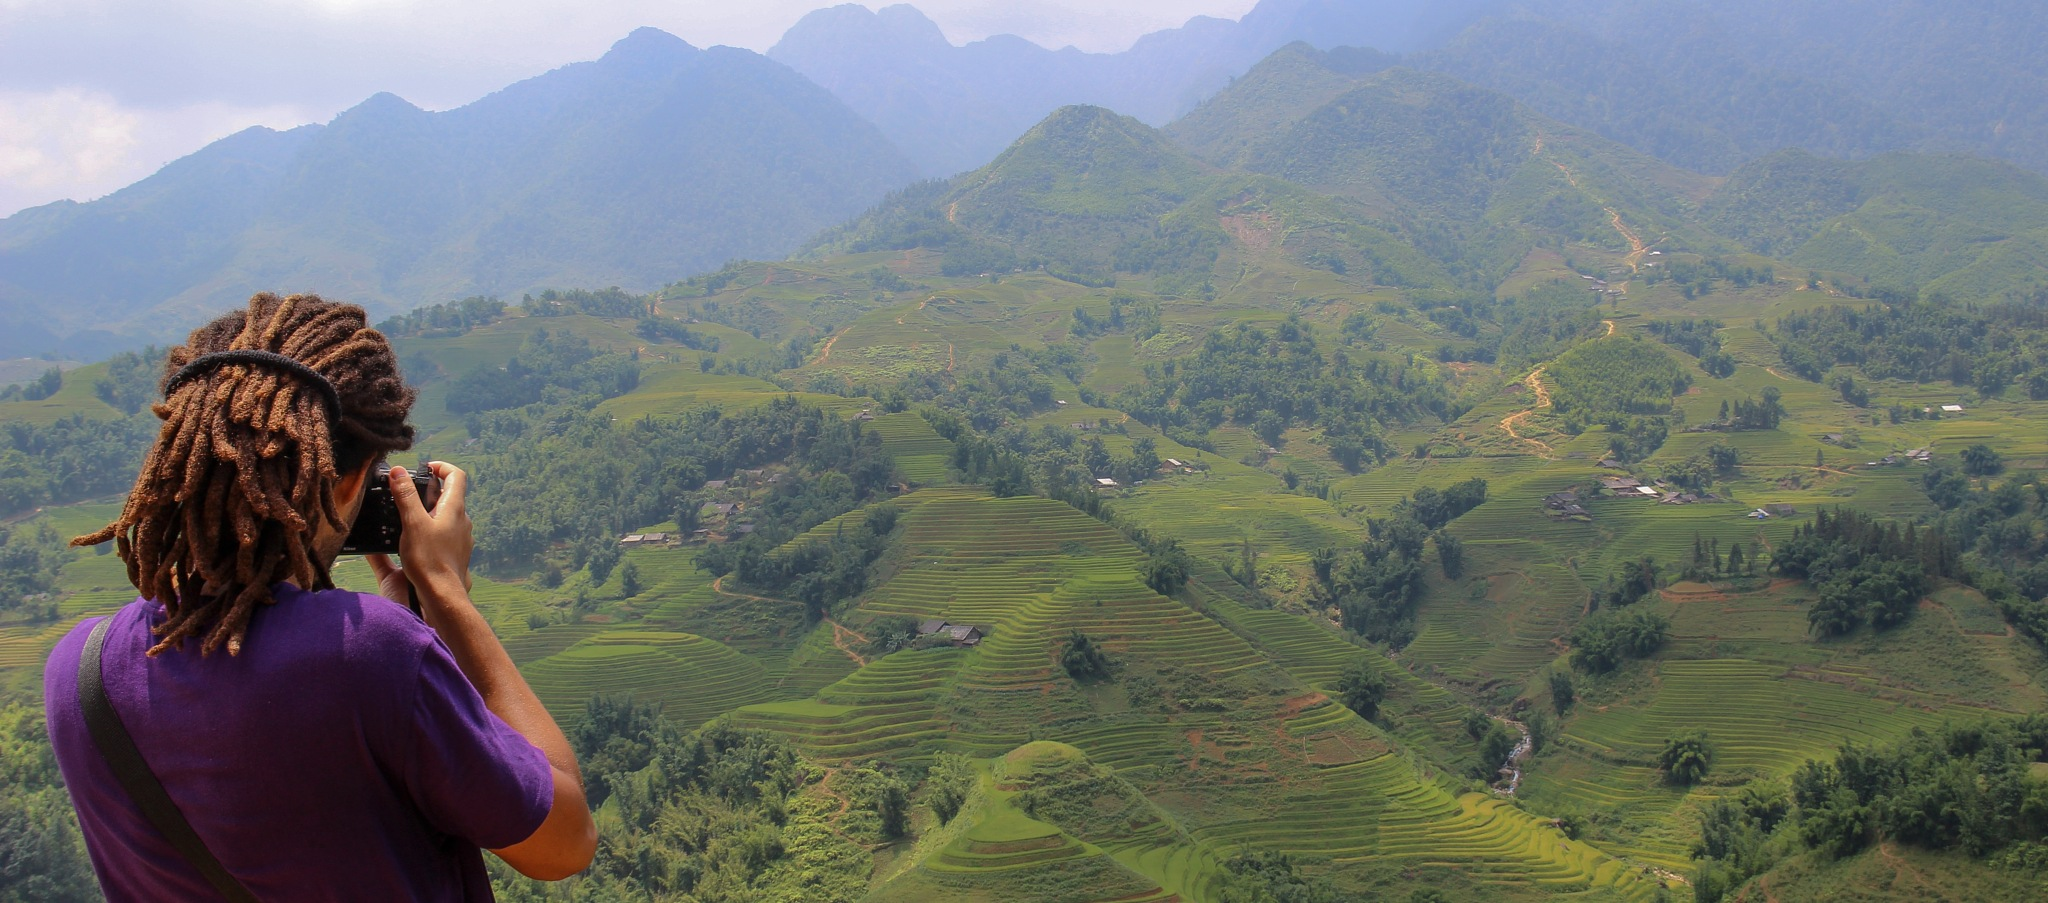 Photographing in Sapa by Or Carmel